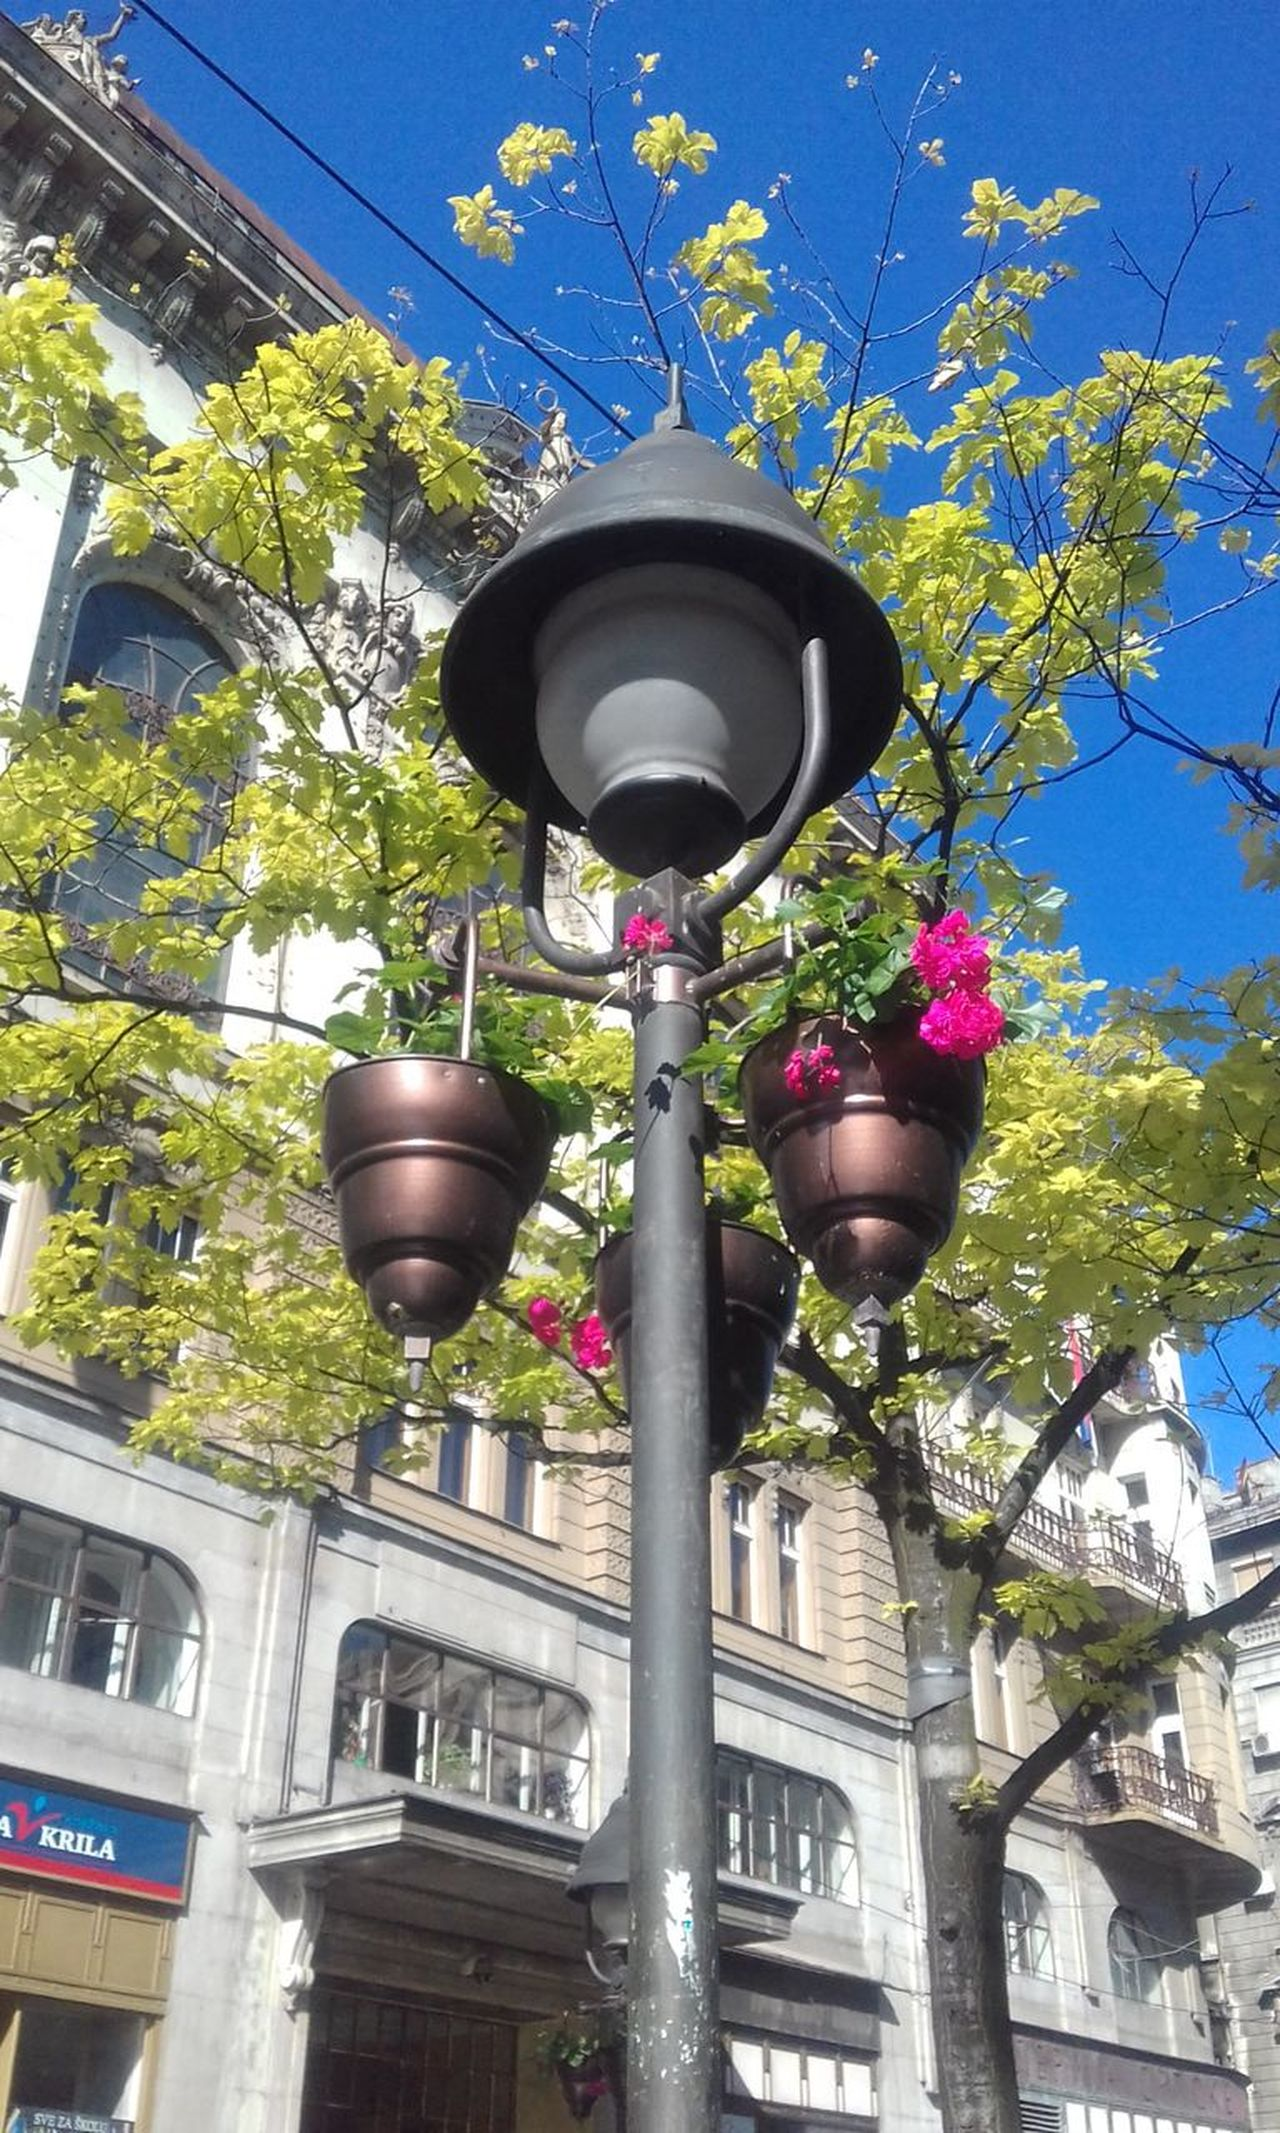 Architecture Blue Blue Sky Building Exterior Built Structure City Clear Sky Day Flourishing Flourishing Belgrade Flower Growth Low Angle View Nature No People Outdoors Romantic Photo Sky Spring Colors Spring Scents Springtime Street Light Streetlamp With Flowers Tree Urban Beauty